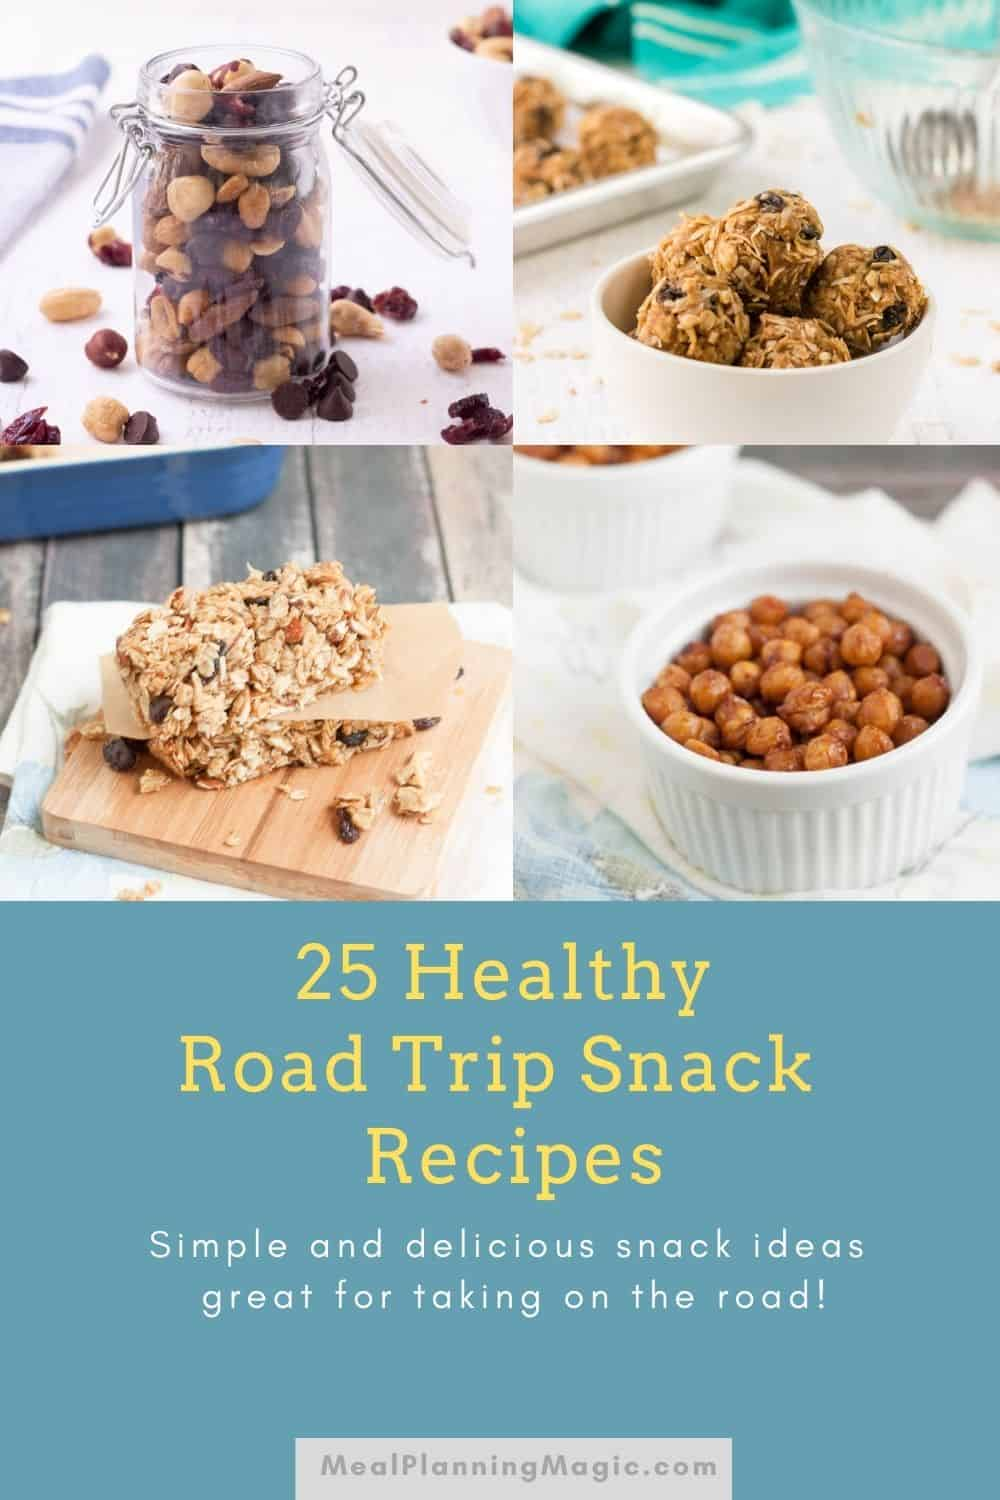 Collage image of healthy, homemade road trip snacks like trail mix, granola bars and energy balls with text overlay at the bottom.